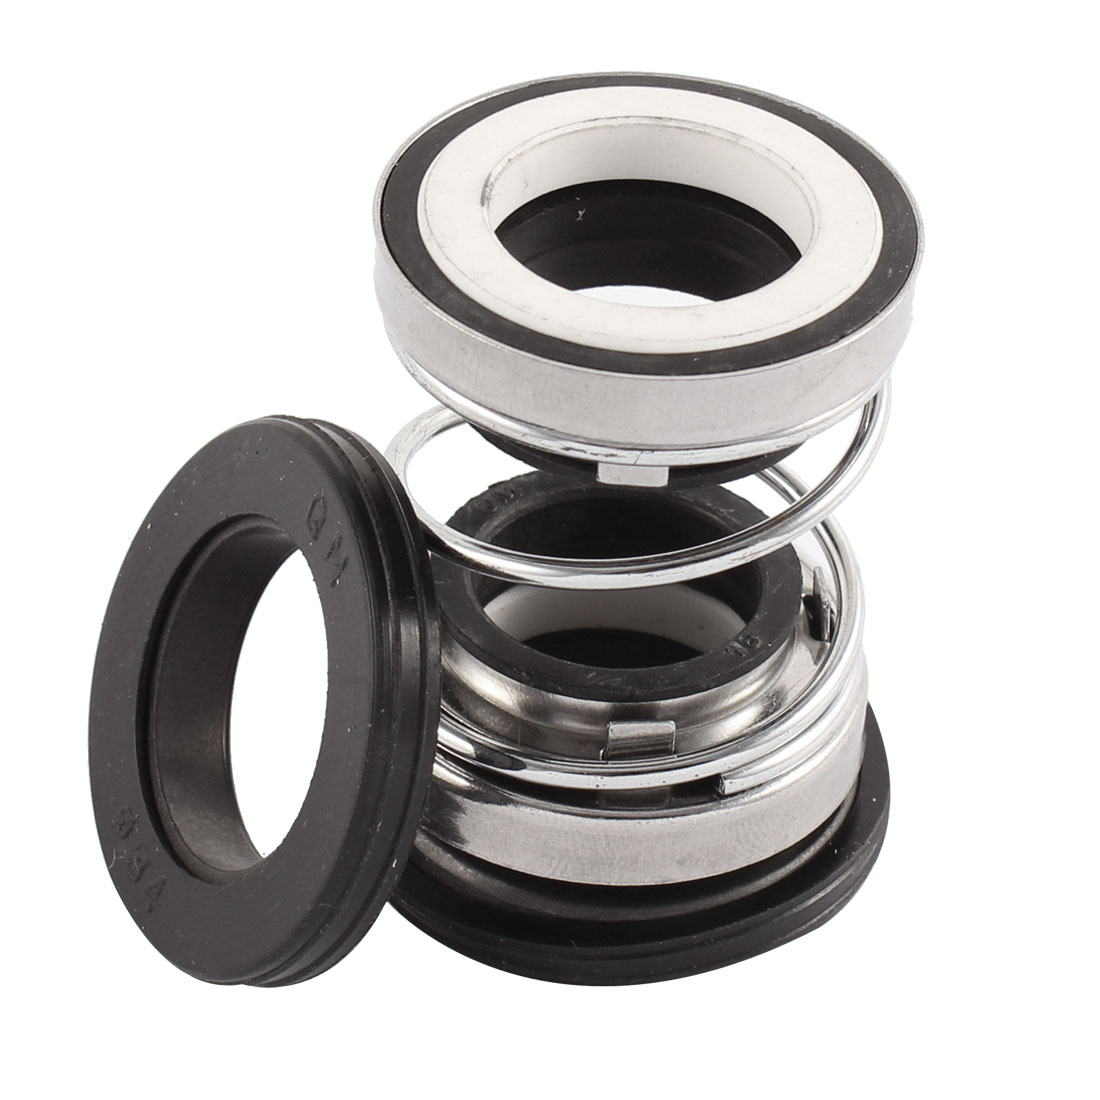 Metal Spring 18mm Internal Diameter Rubber Bellow Water Pump Mechanical Seal